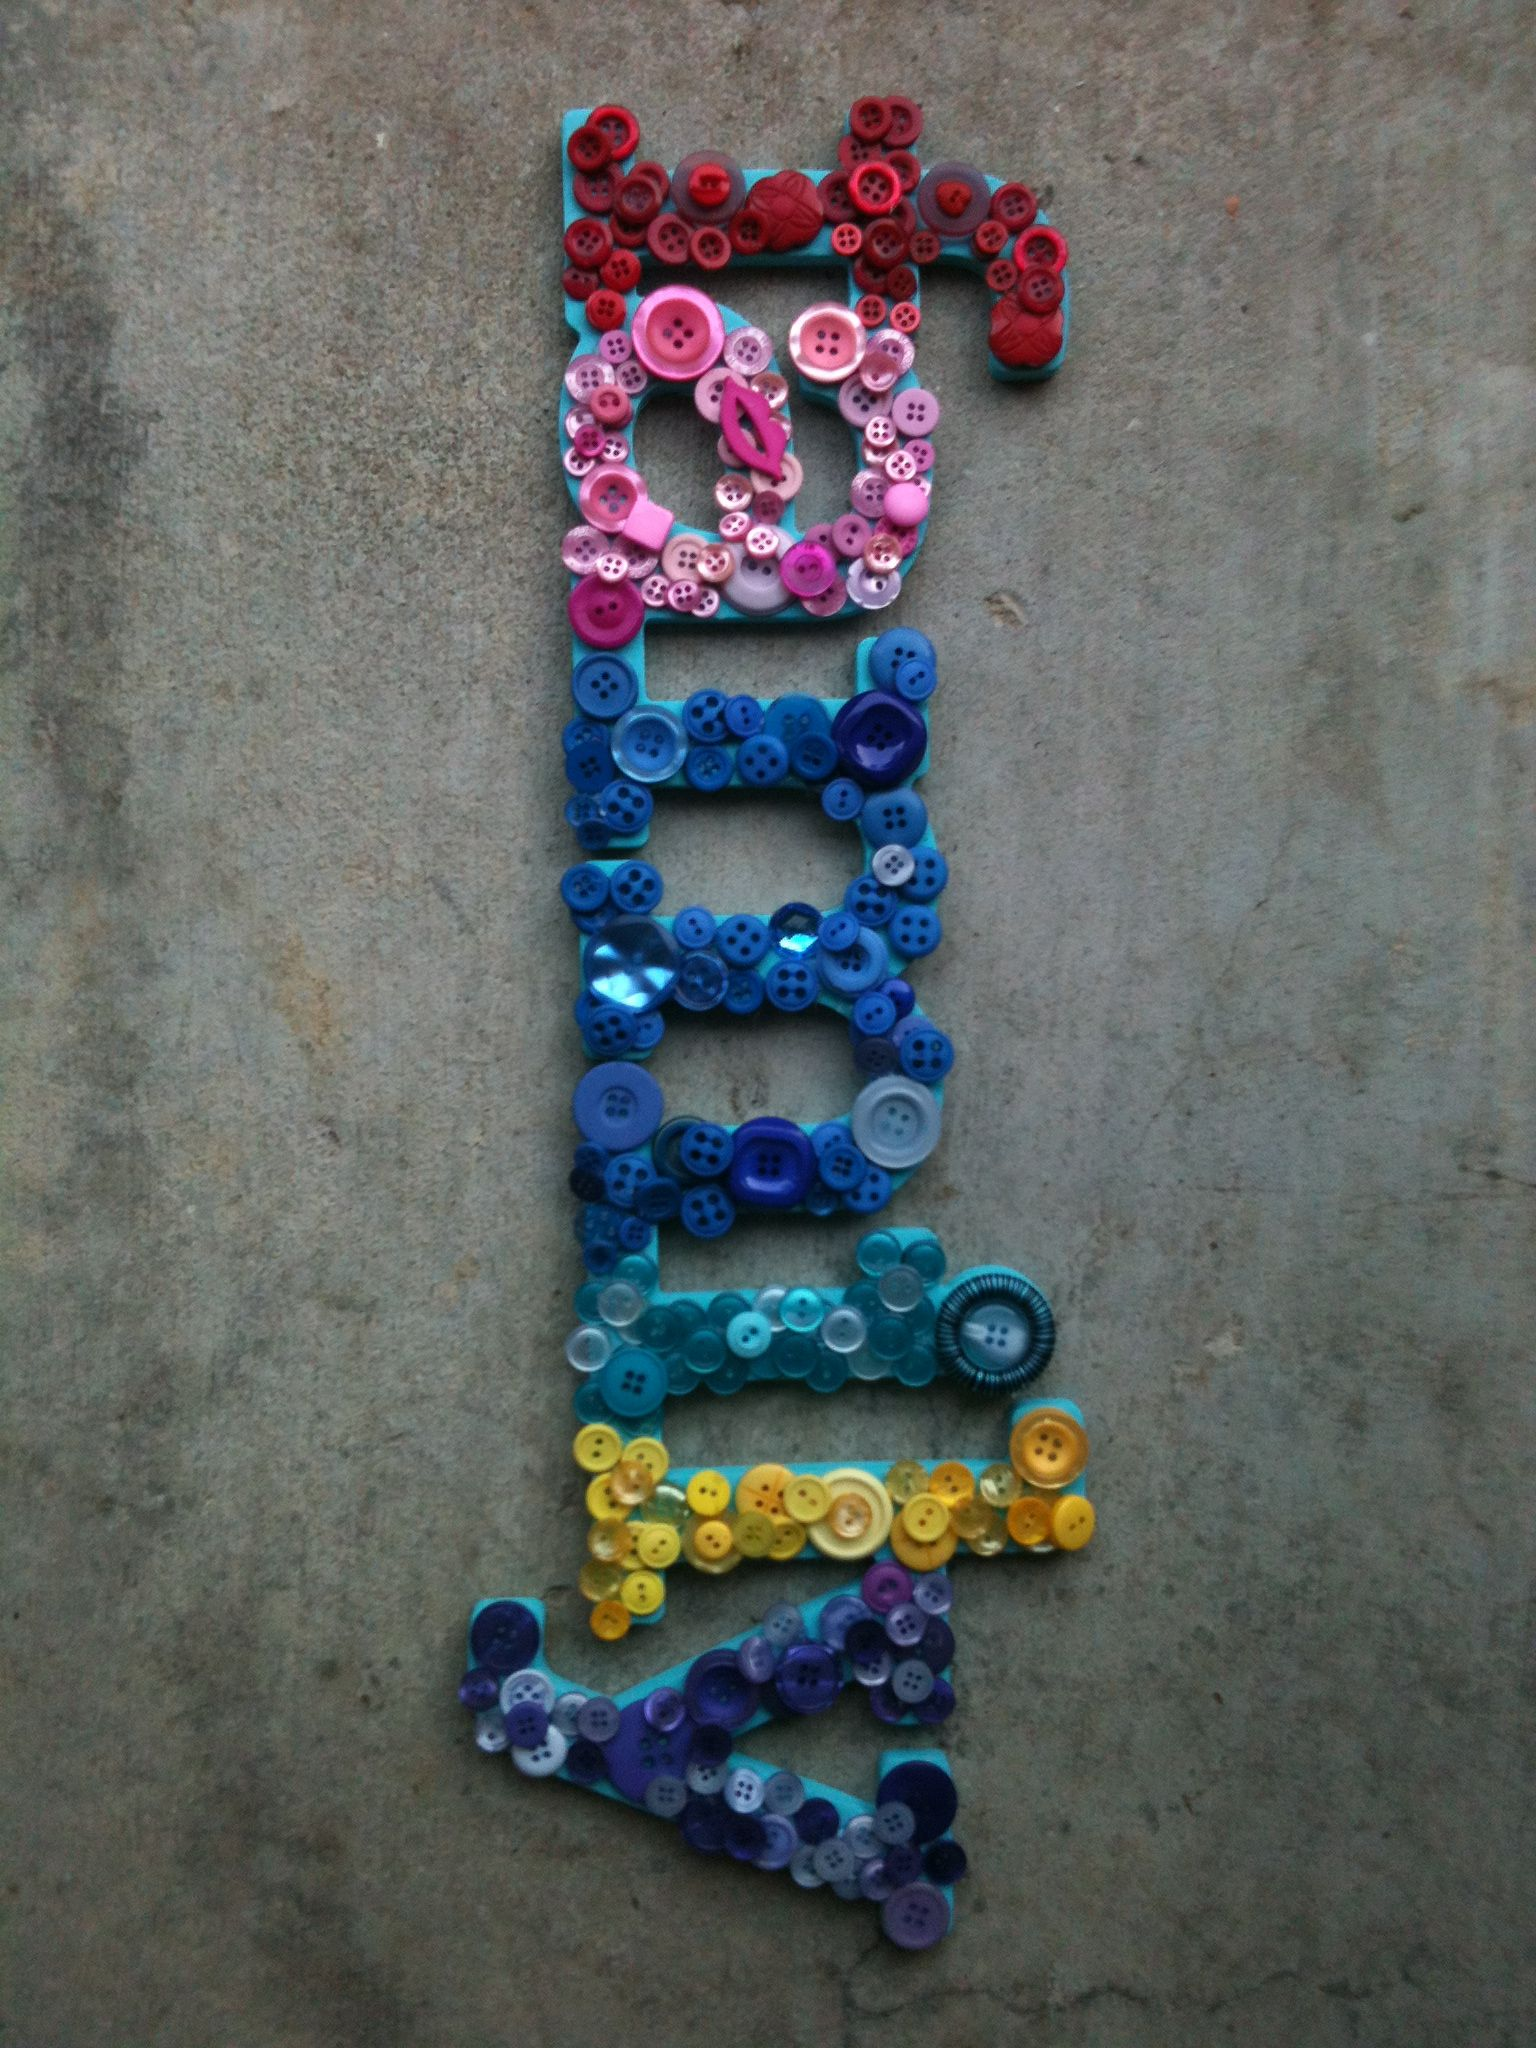 Button Craft On A Cardboard Sign Easy And Fun Button Crafts For Kids Button Crafts Diy Crafts For Adults